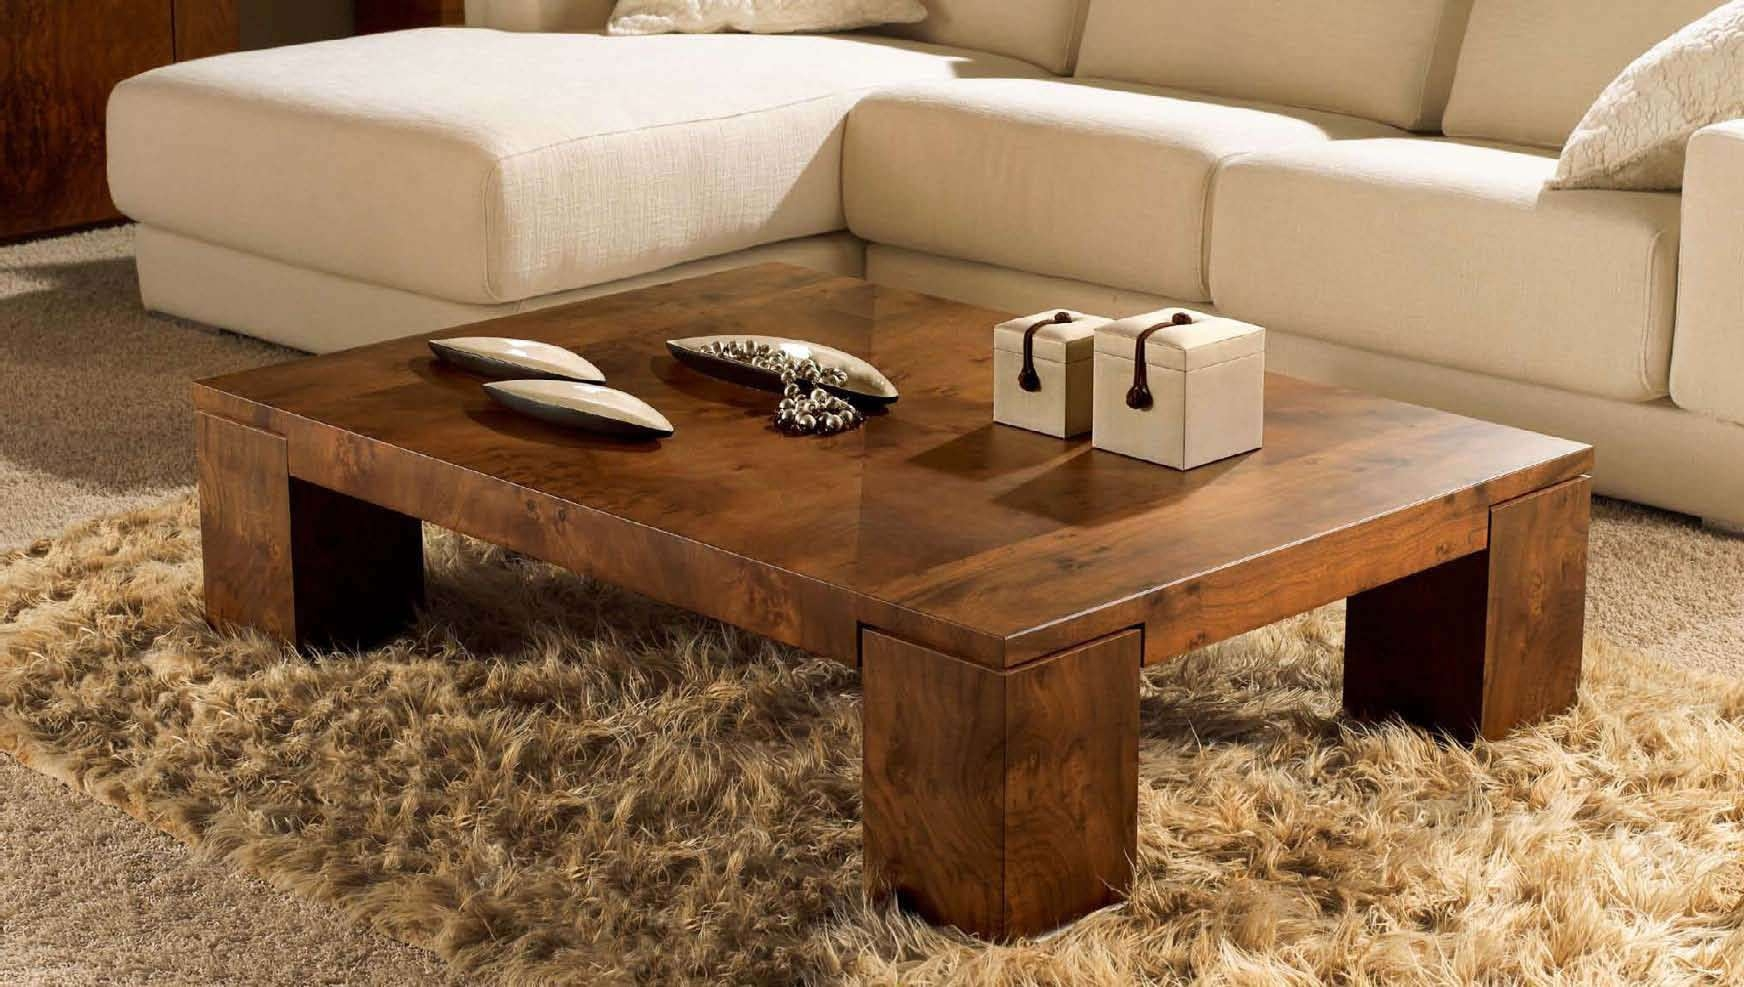 Easy Wooden Coffee Table Set For Small Home Decor Inspiration Within Preferred Short Coffee Tables (View 8 of 20)